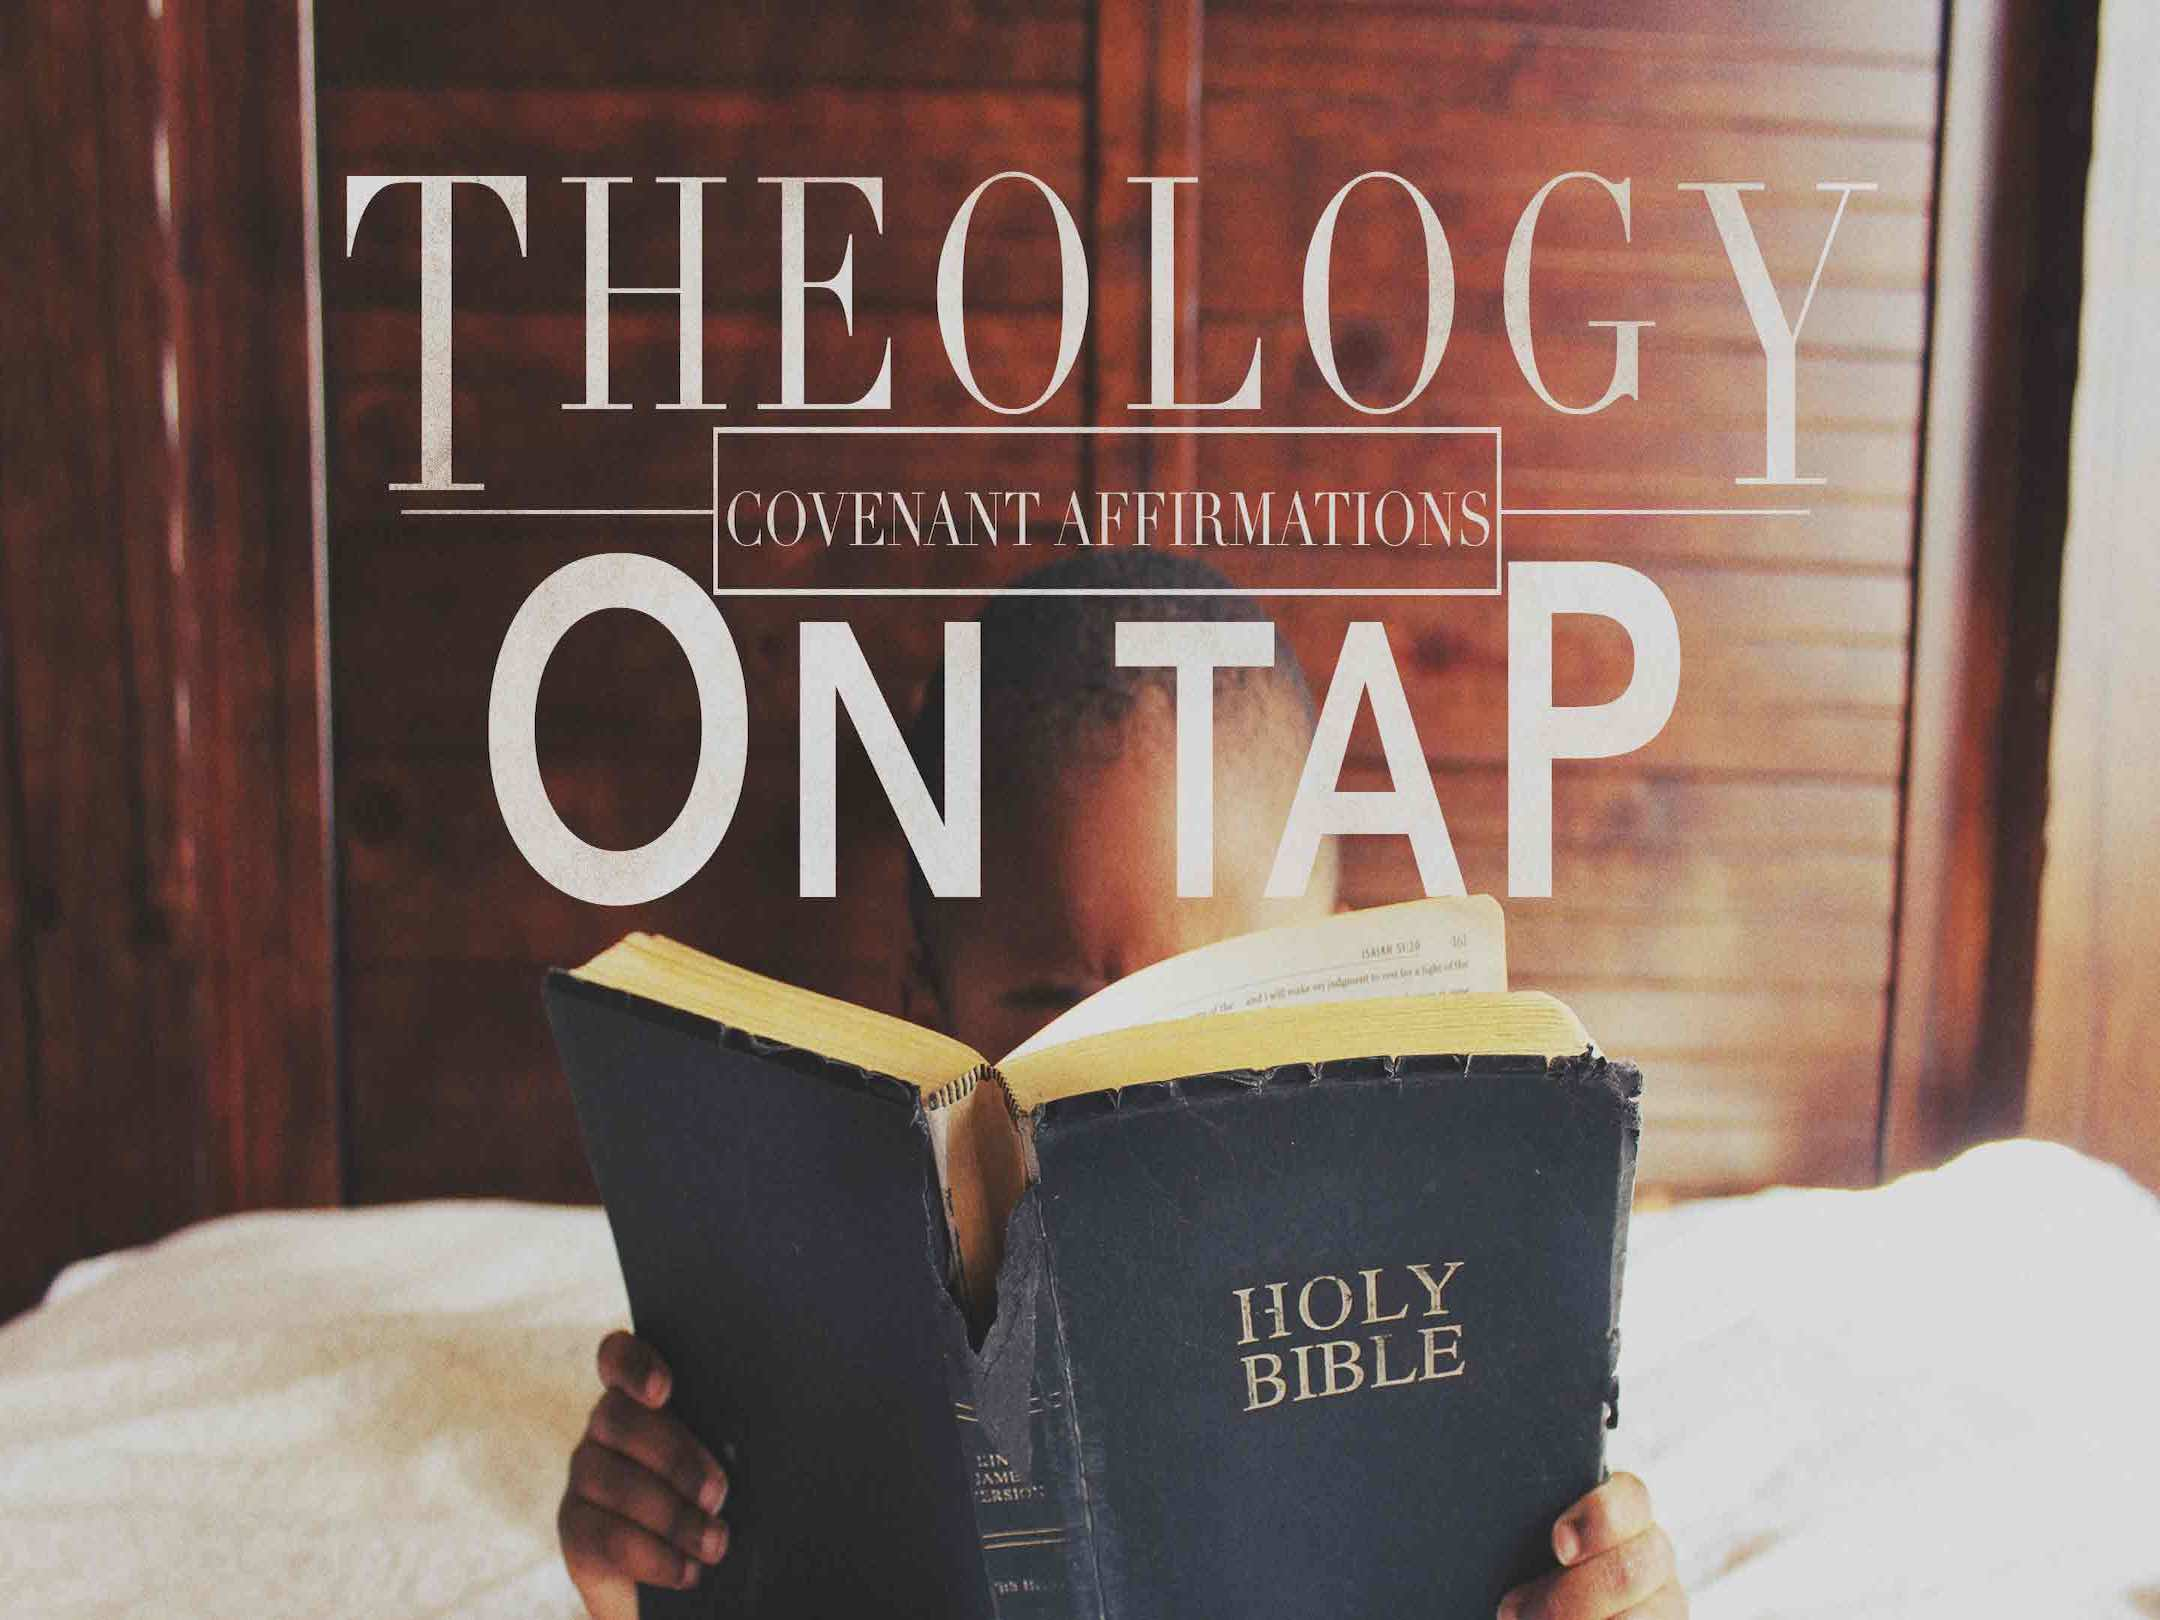 theology-on-tap-2 copy.jpg